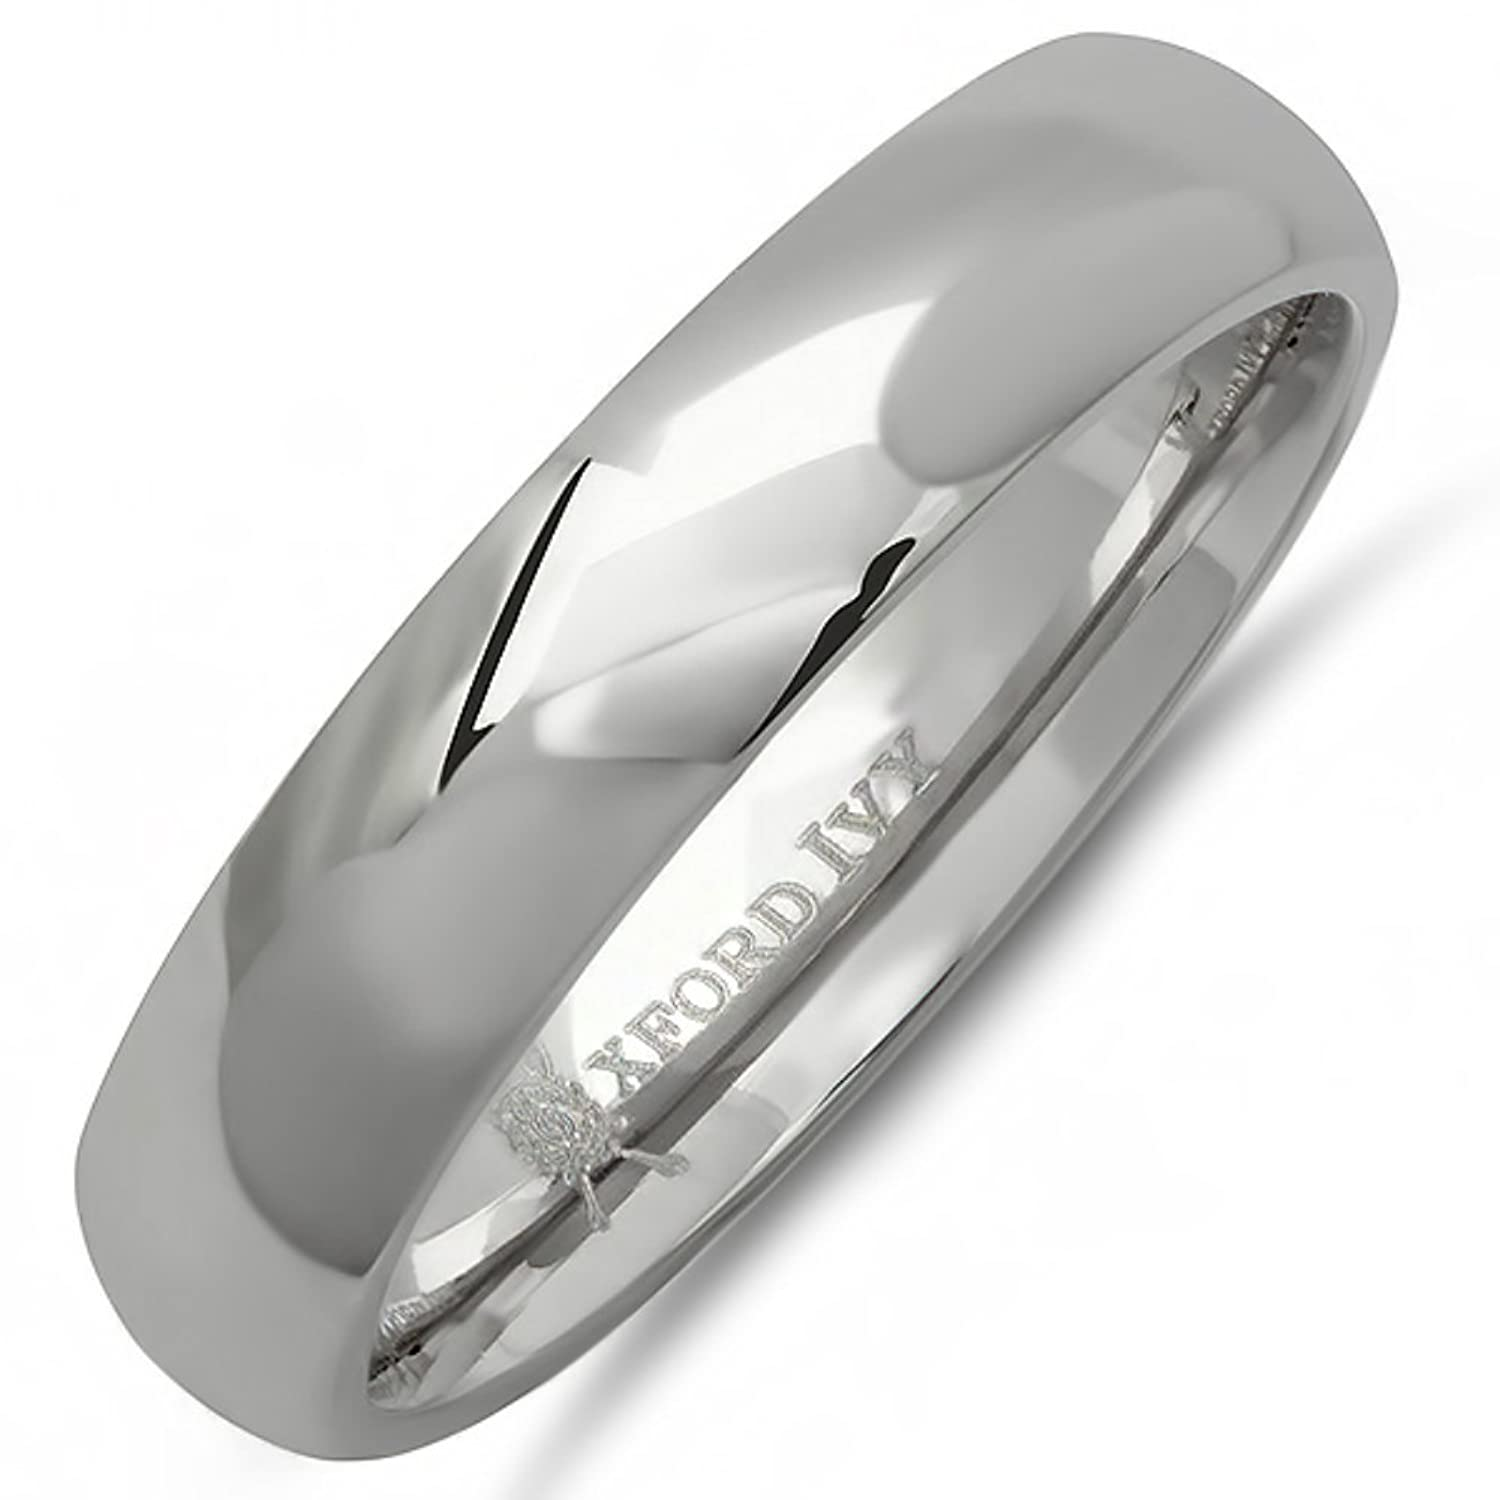 artcarved bands picture wedding of plain band engagement platinum designer gold product mens white g